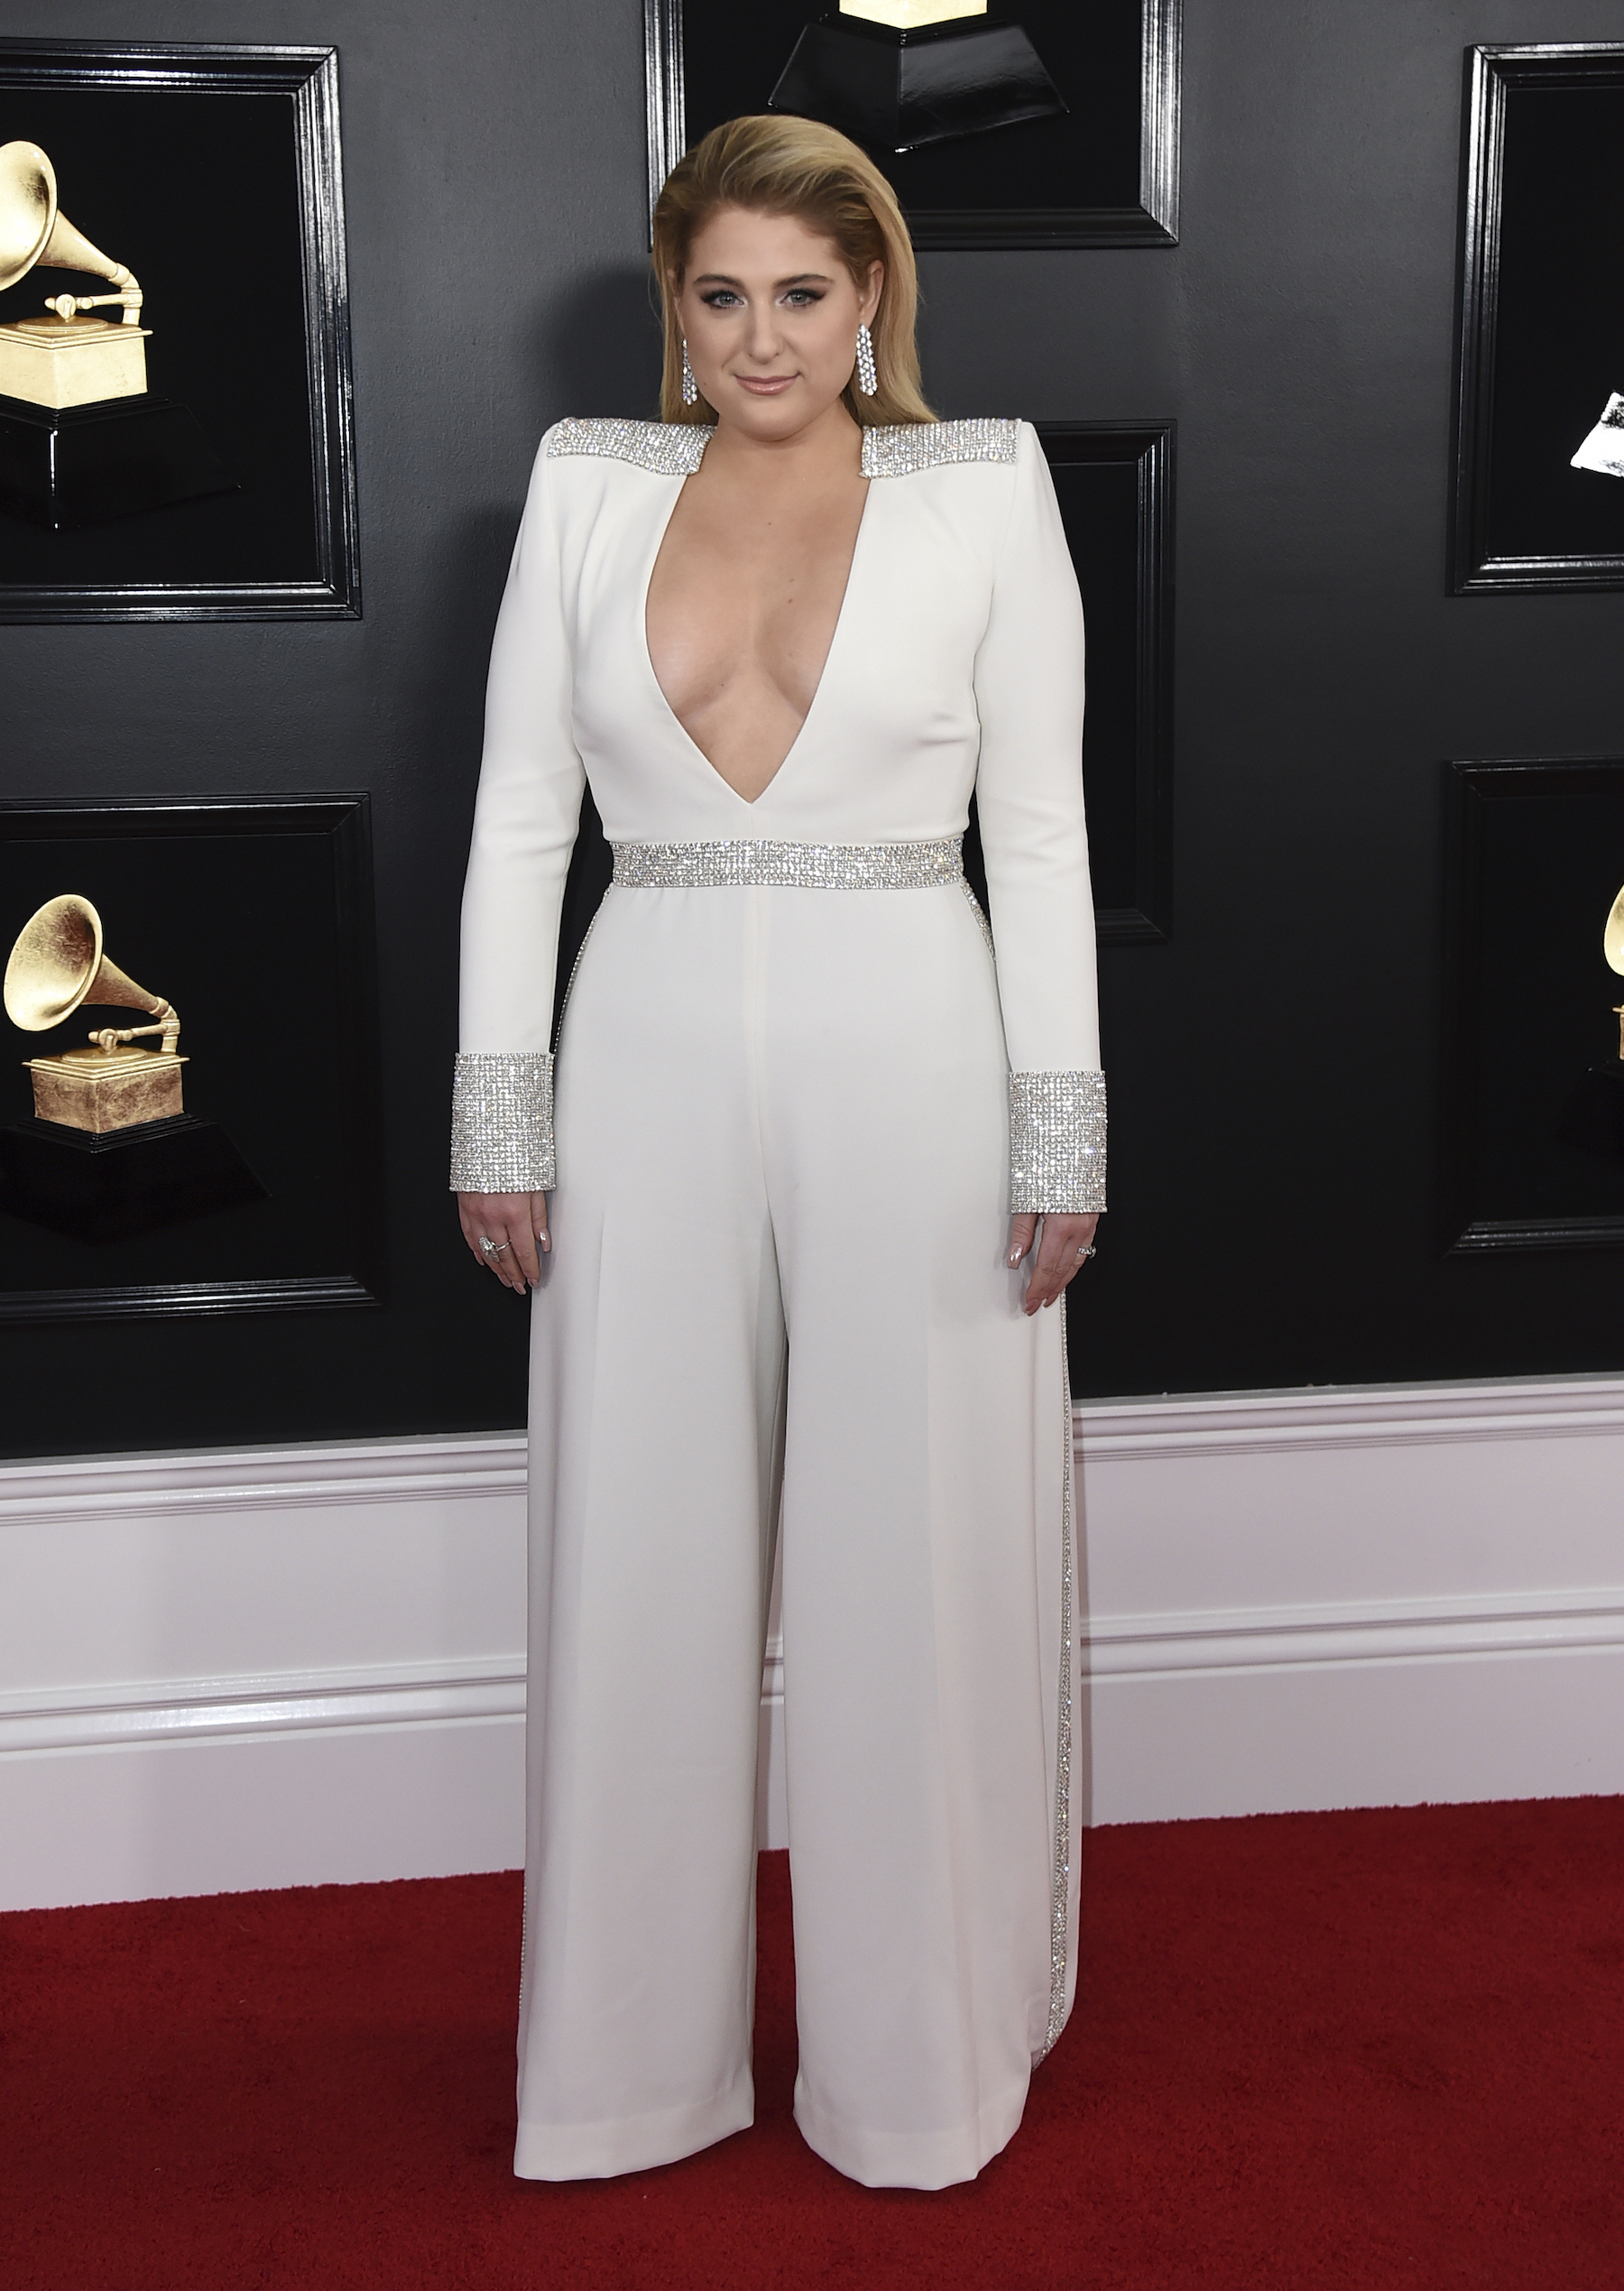 <div class='meta'><div class='origin-logo' data-origin='AP'></div><span class='caption-text' data-credit='Jordan Strauss/Invision/AP'>Meghan Trainor arrives at the 61st annual Grammy Awards at the Staples Center on Sunday, Feb. 10, 2019, in Los Angeles.</span></div>